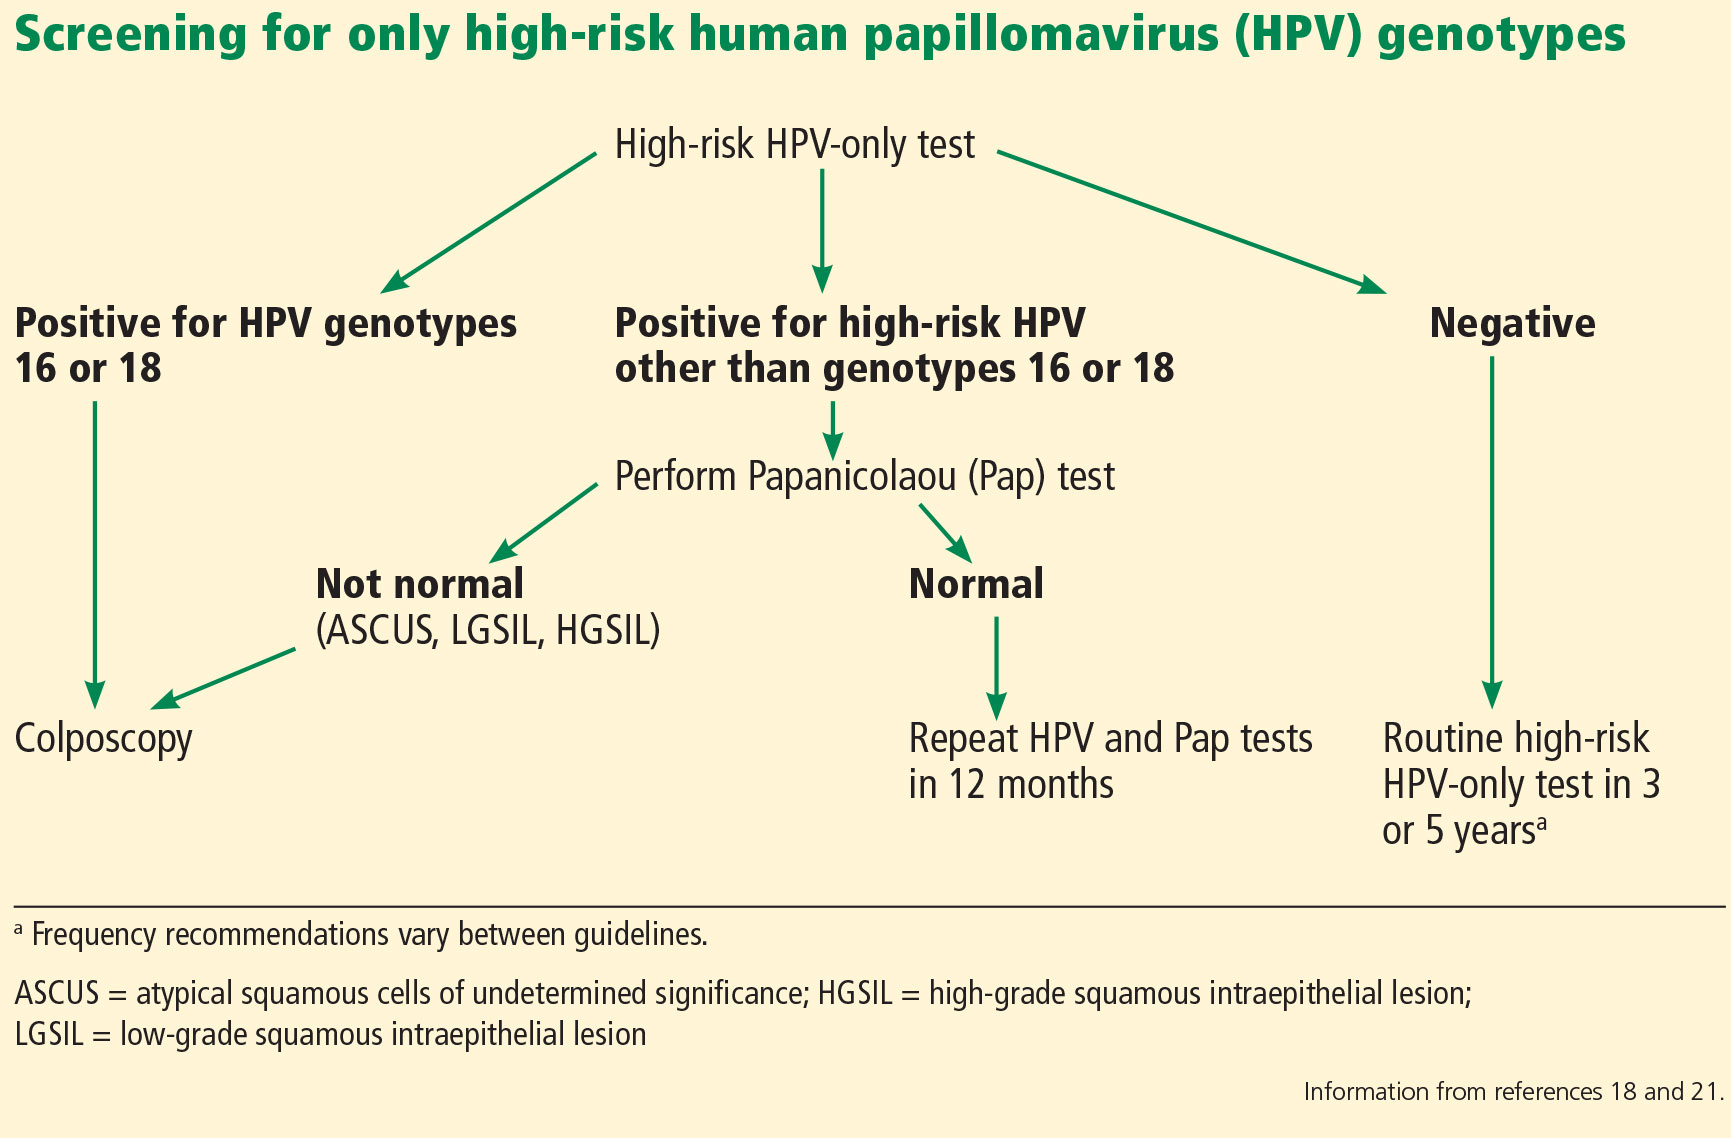 Hpv high risk reflex for tp - Hpv high risk pap. Hpv high risk on pap,